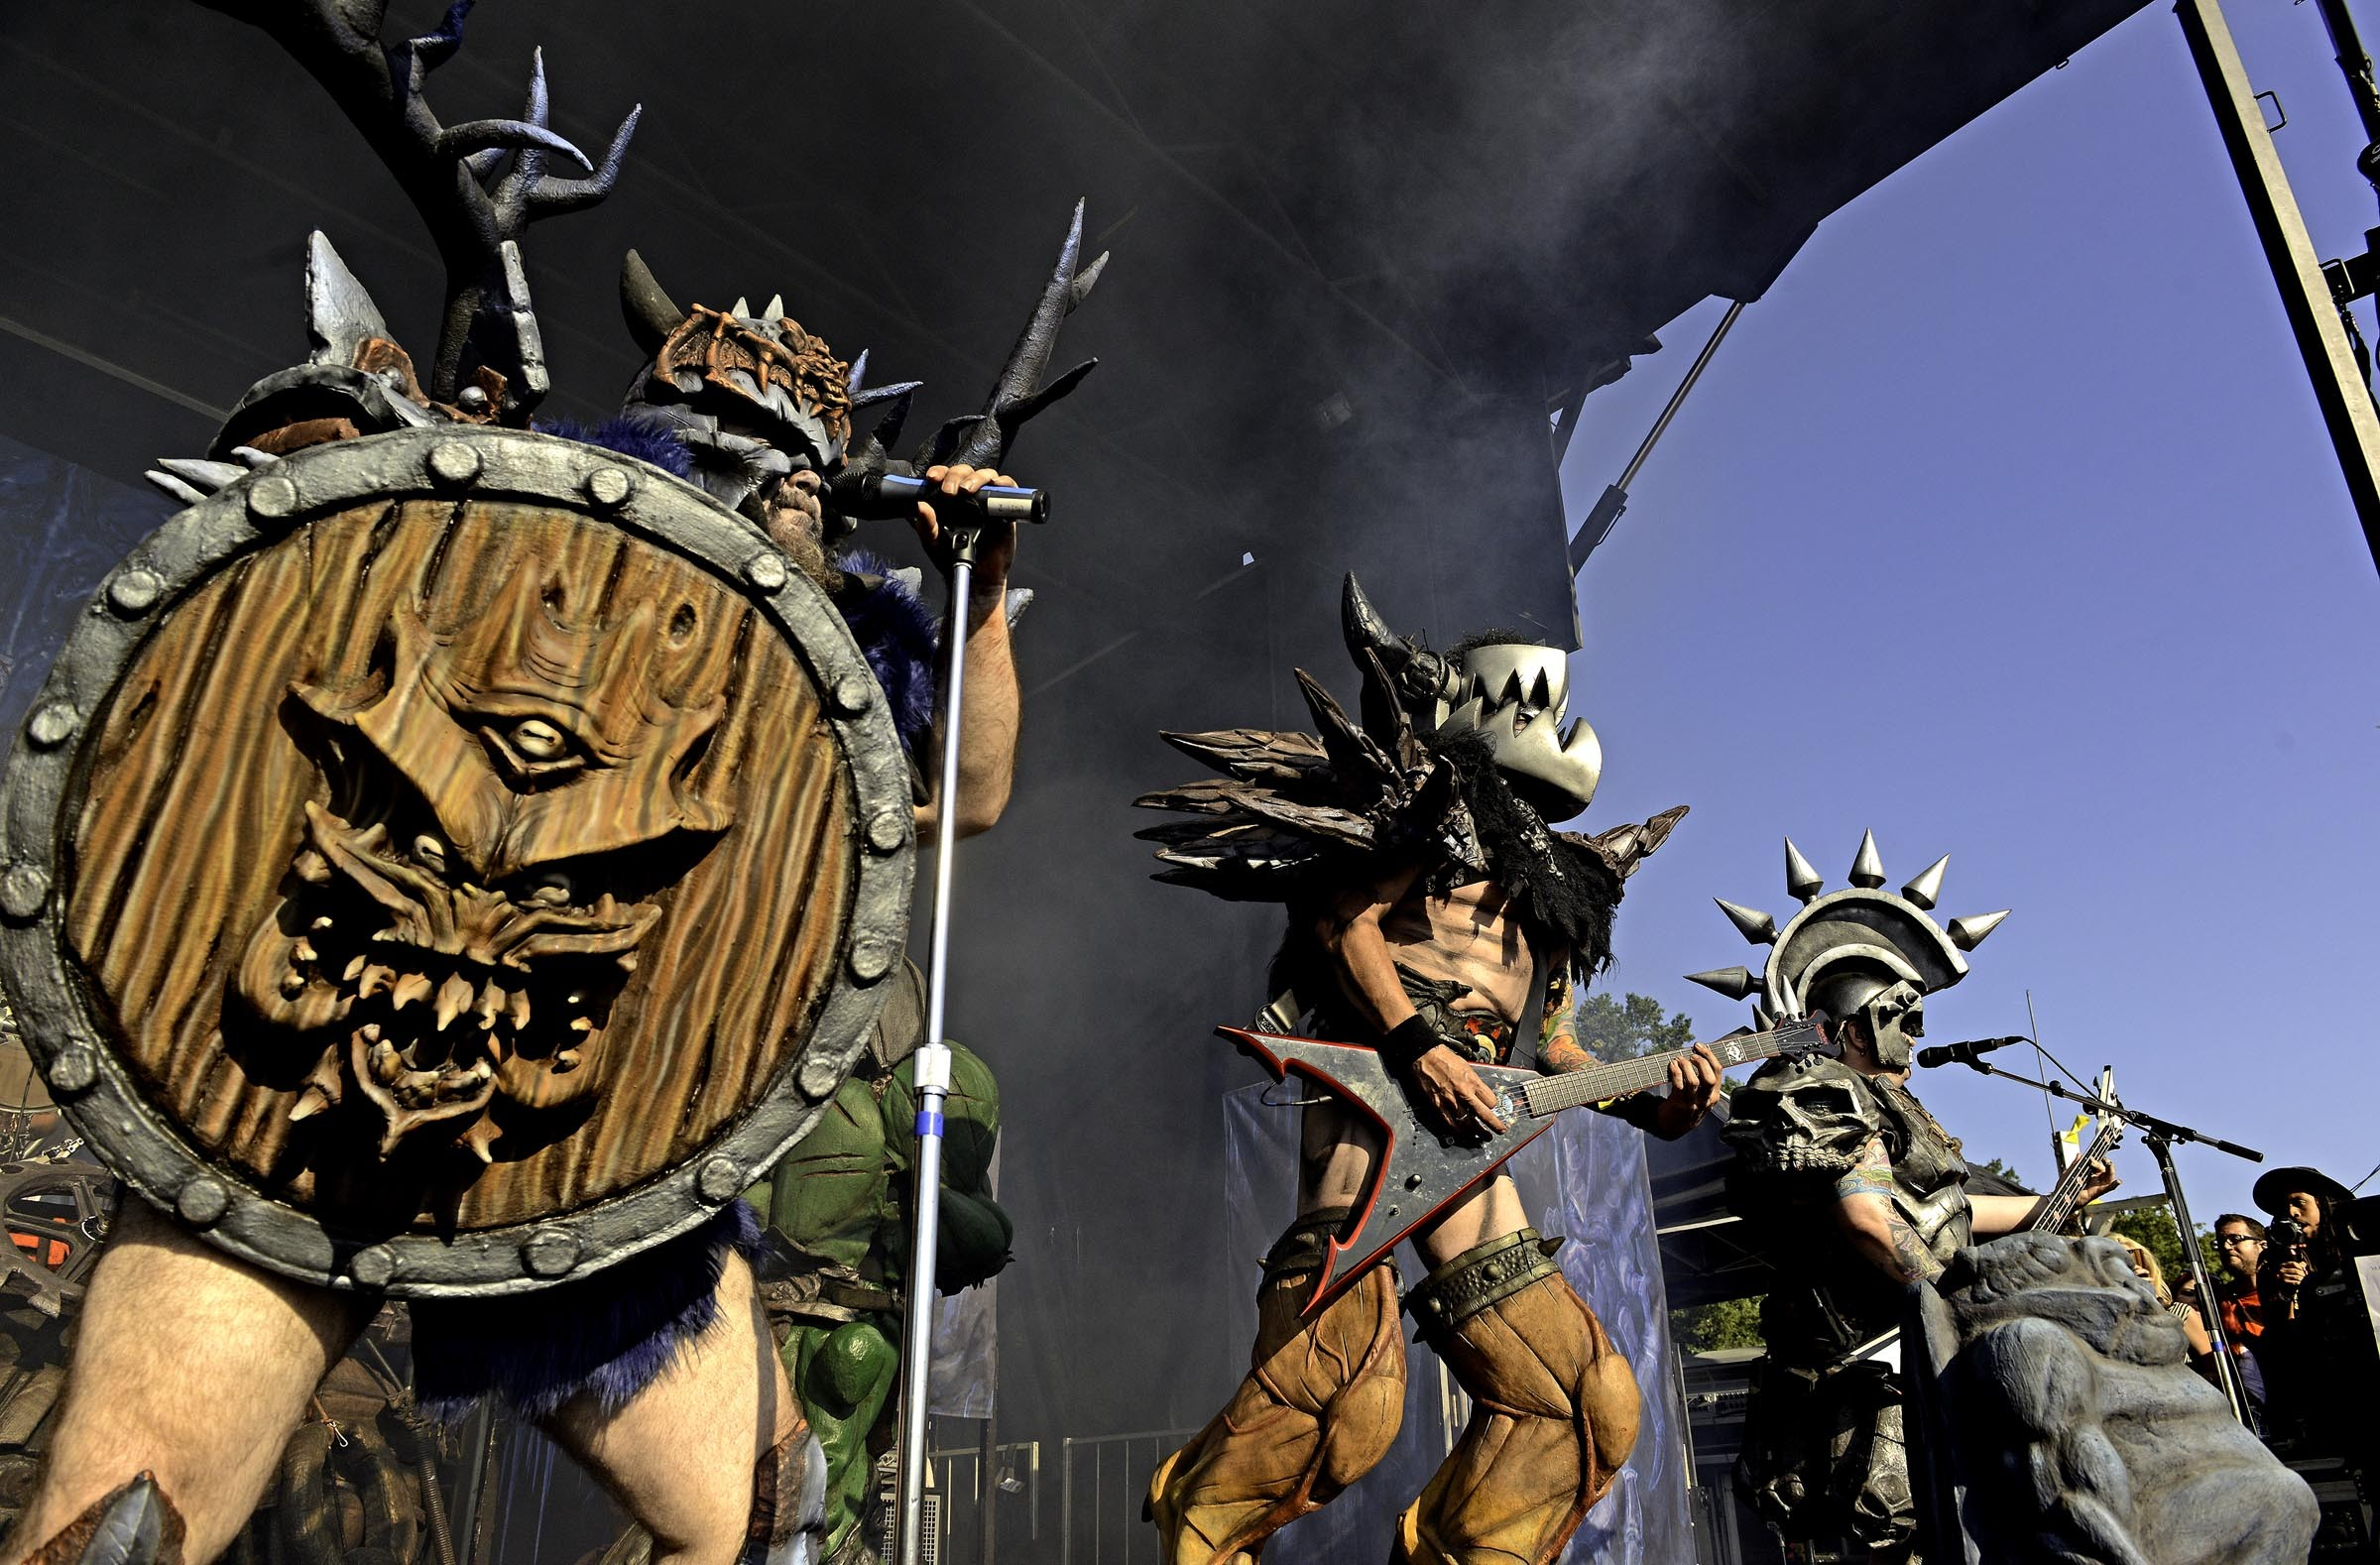 onstage at Gwar B-Q, thrilling fans with the emergence of Bishop's new Norse-mythology-inspired character, Blothar (far left). Beside him is rhythm guitarist Balsac the Jaws of Death (Mike Derks) and bassist Beefcake (Jamison Land). - SCOTT ELMQUIST